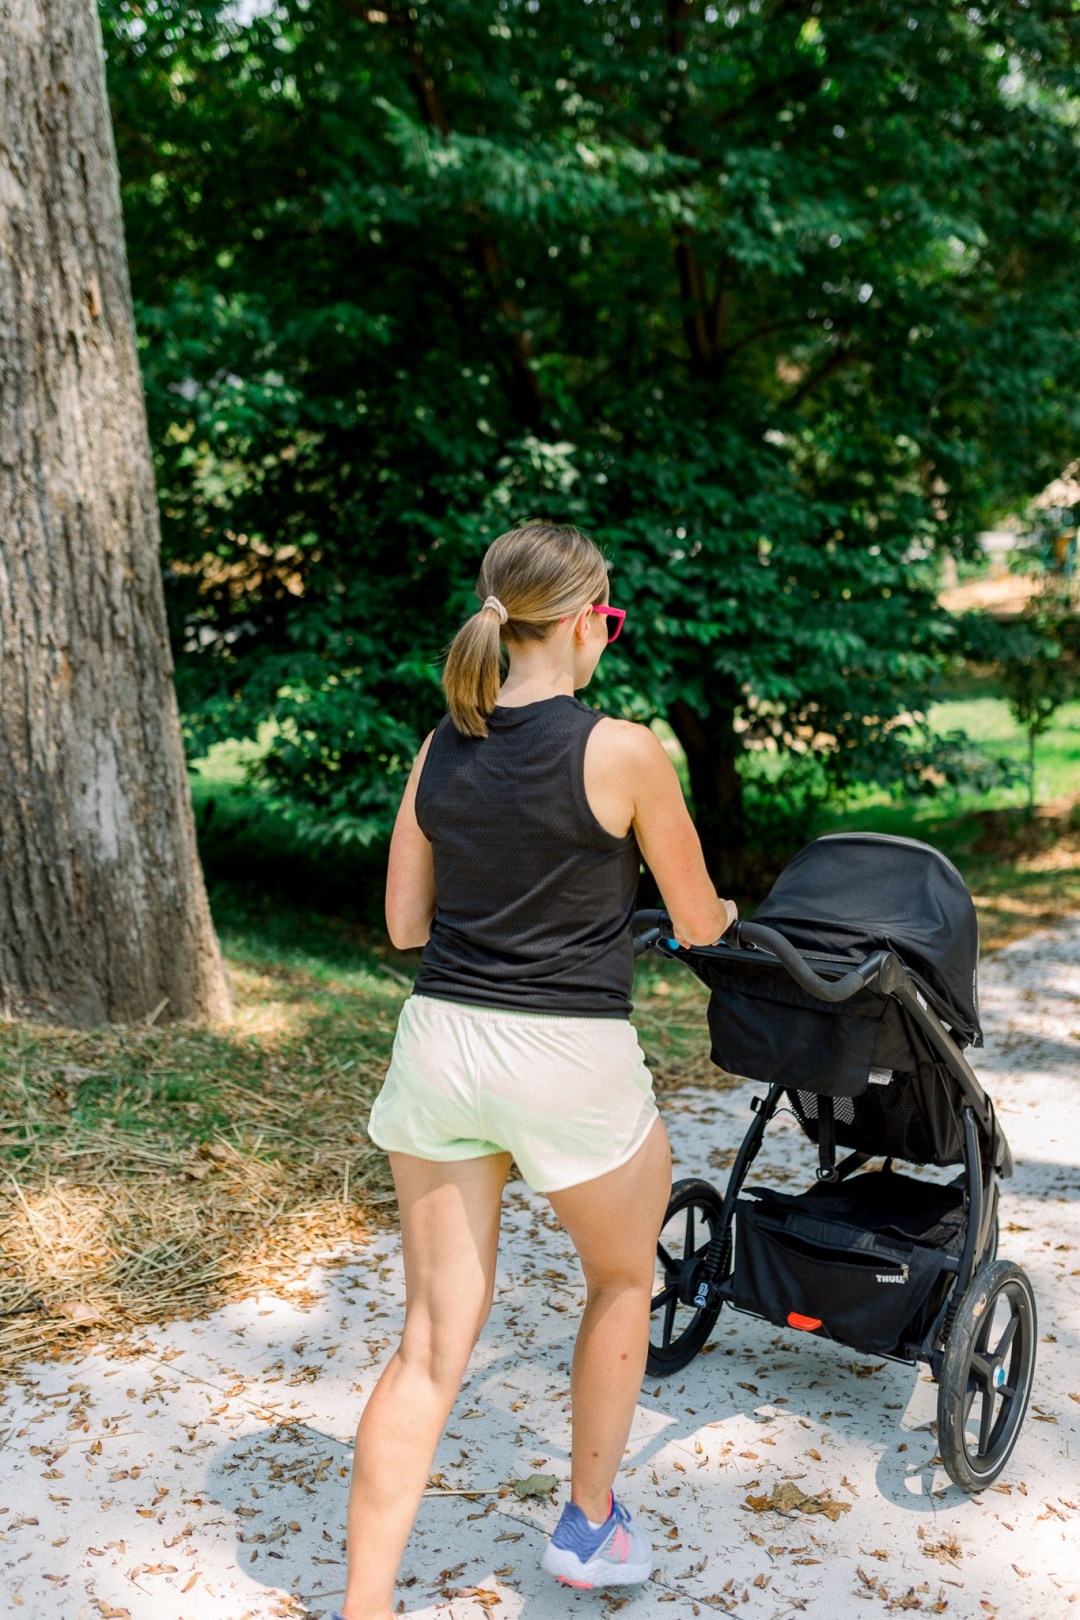 Jogging stroller with baby